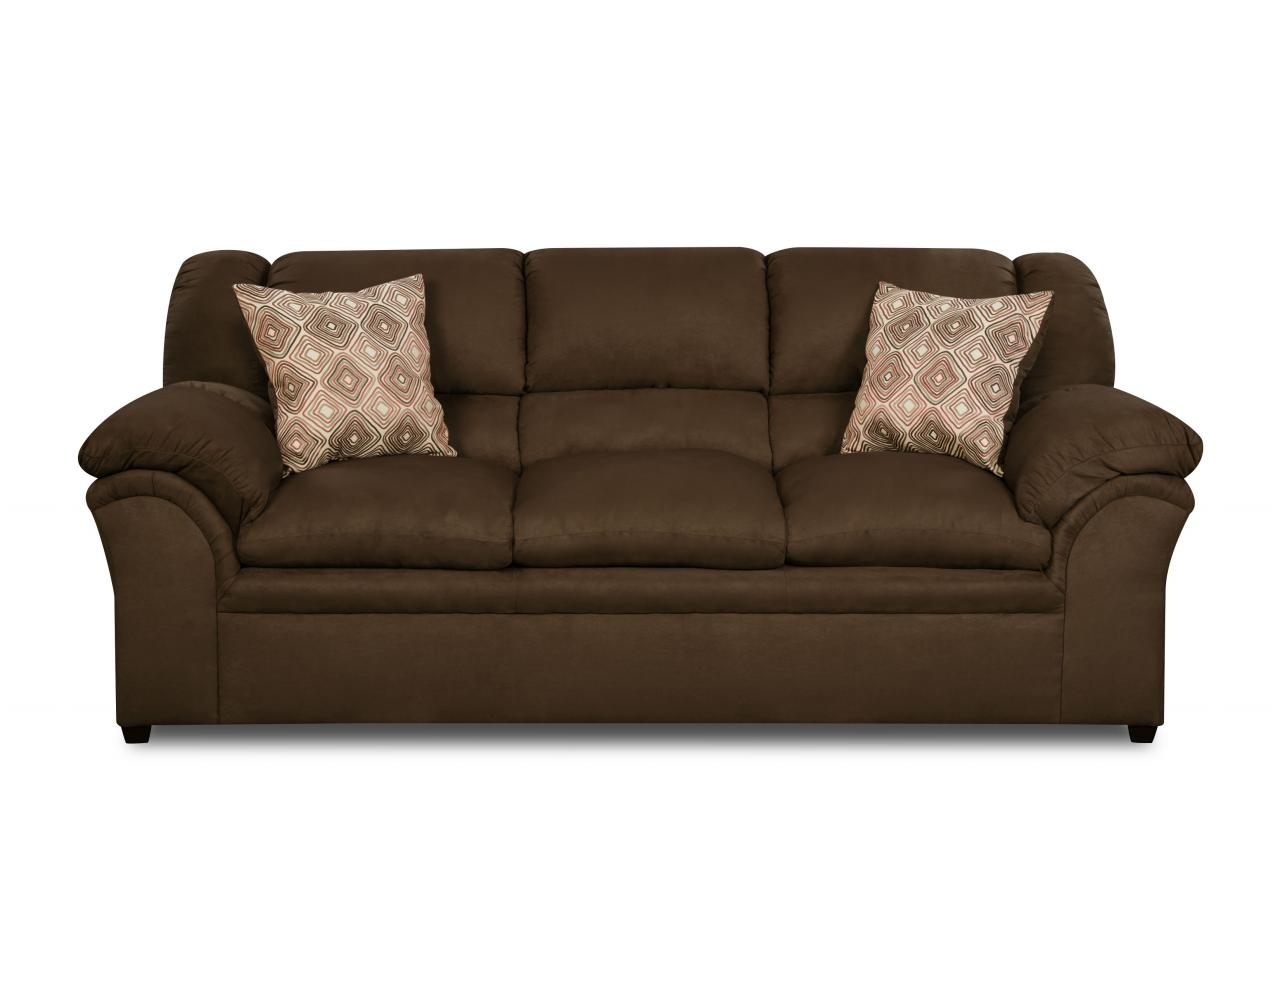 Dakota direct furniture current specials mattresssale for Direct furniture